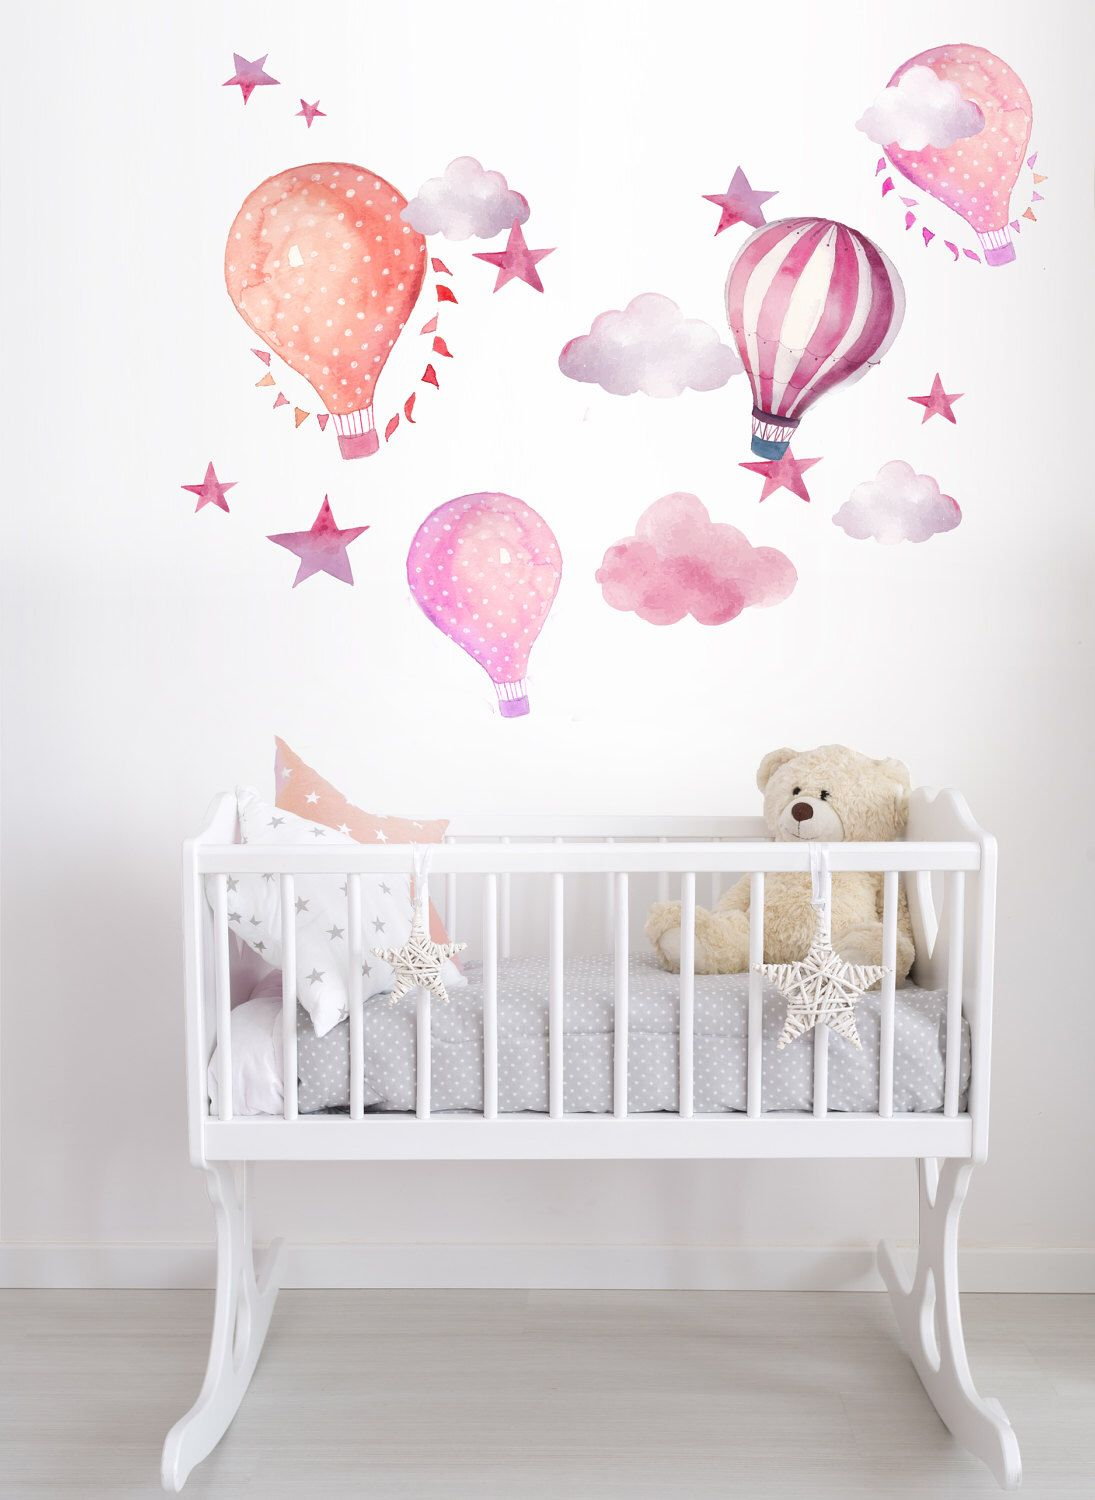 Hot Air Balloon Watercolor Wall Decal Kit Peel And Stick Kids